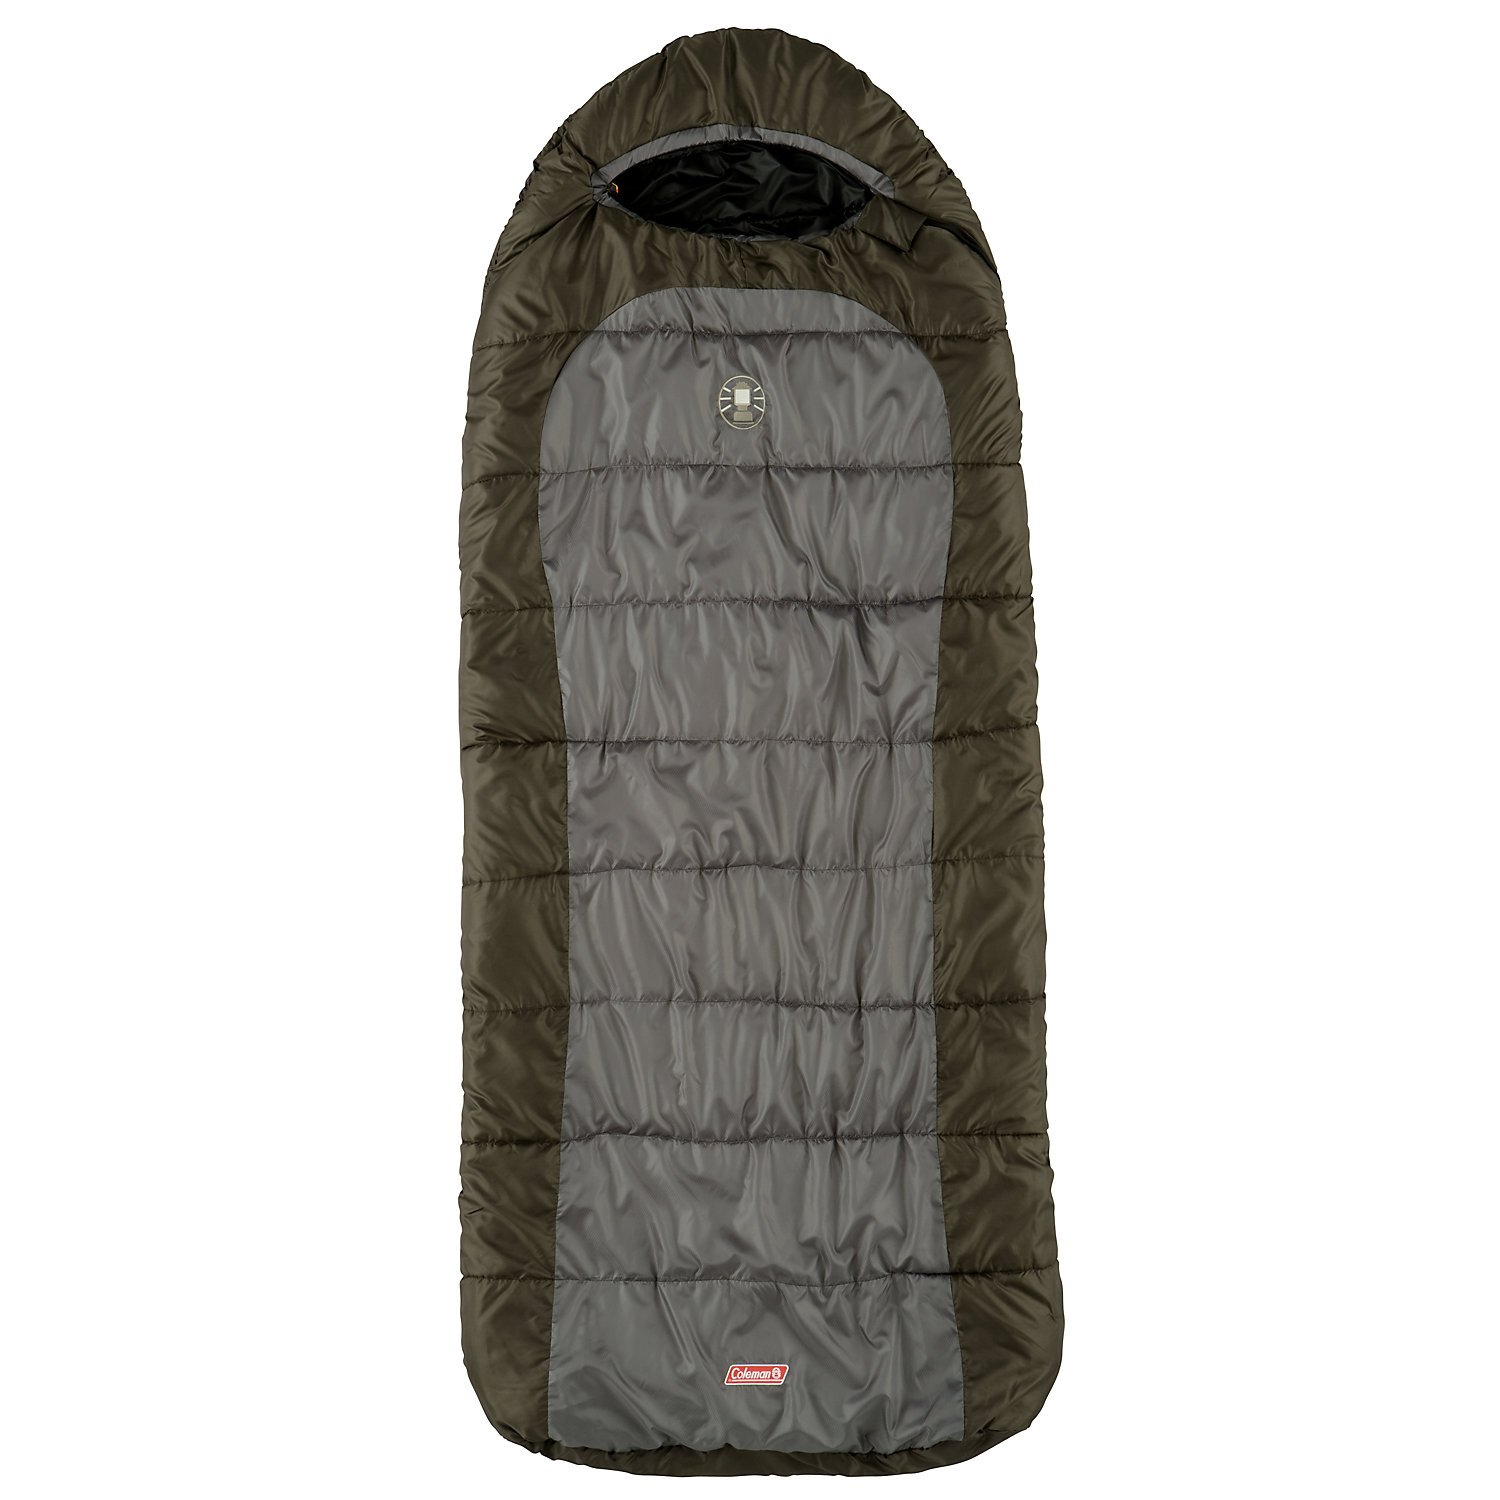 An image related to Coleman Big Basin 2000012422 Men's 40 Degree Polyester Sleeping Bag